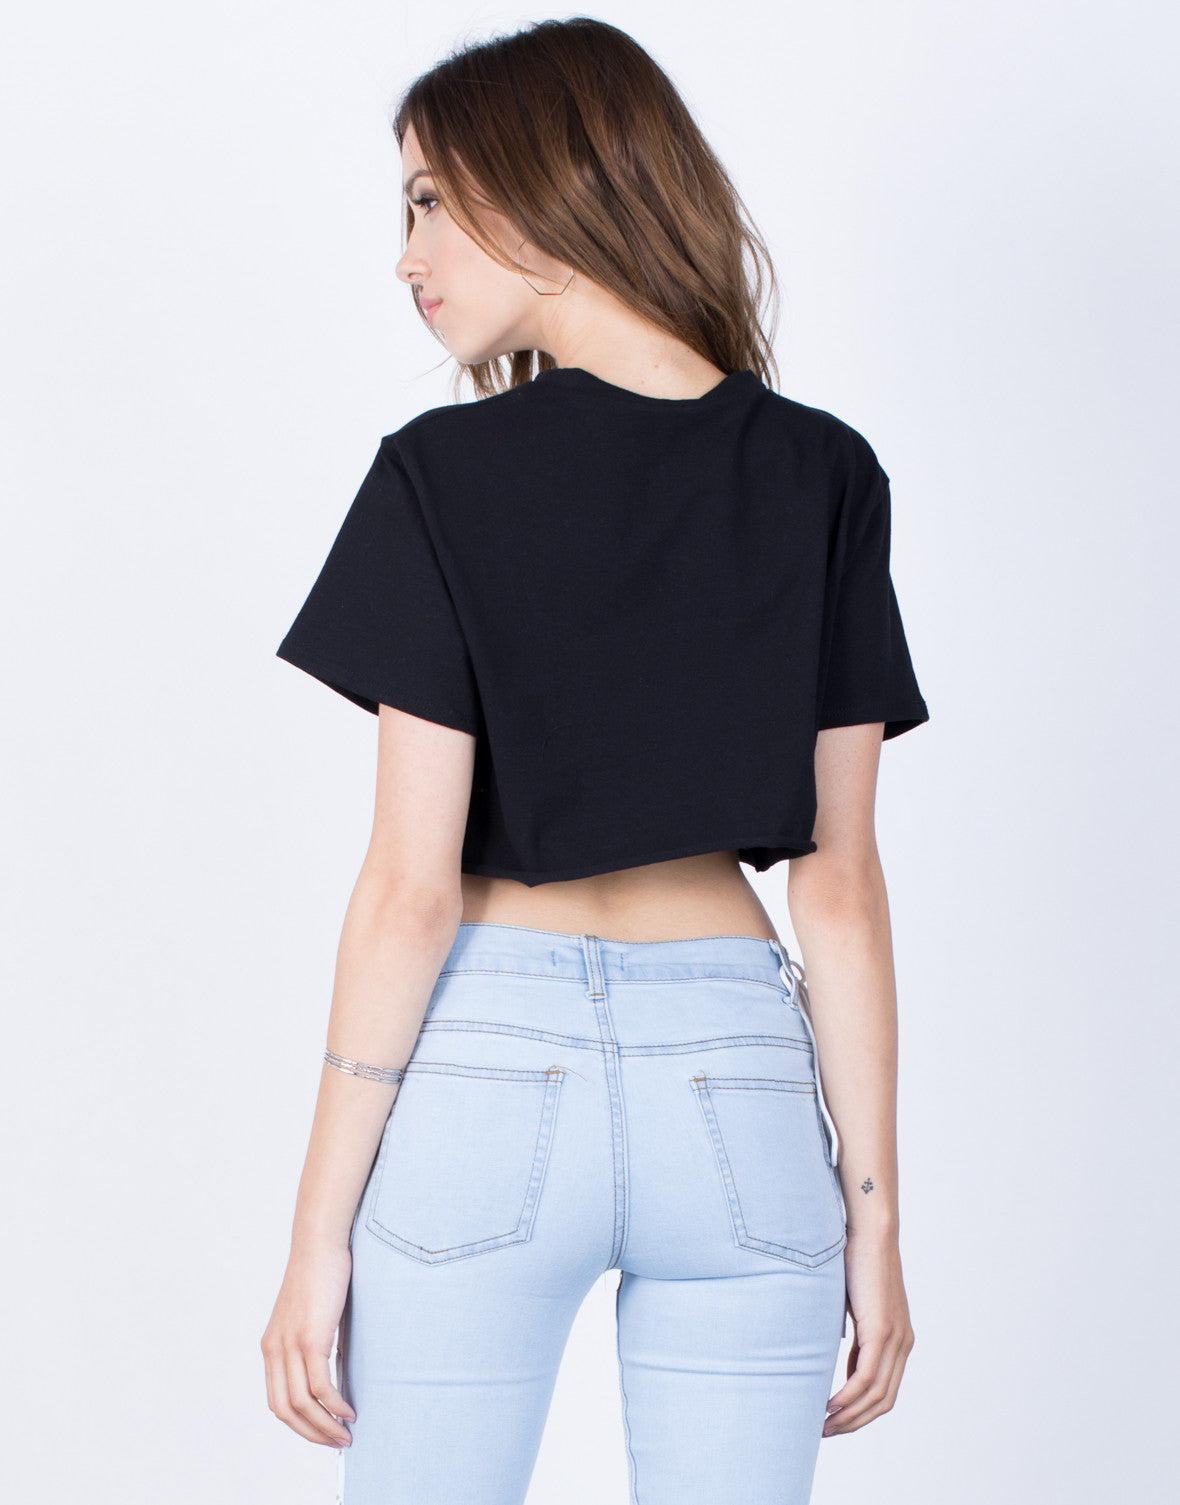 Back View of Rosey Crop Top